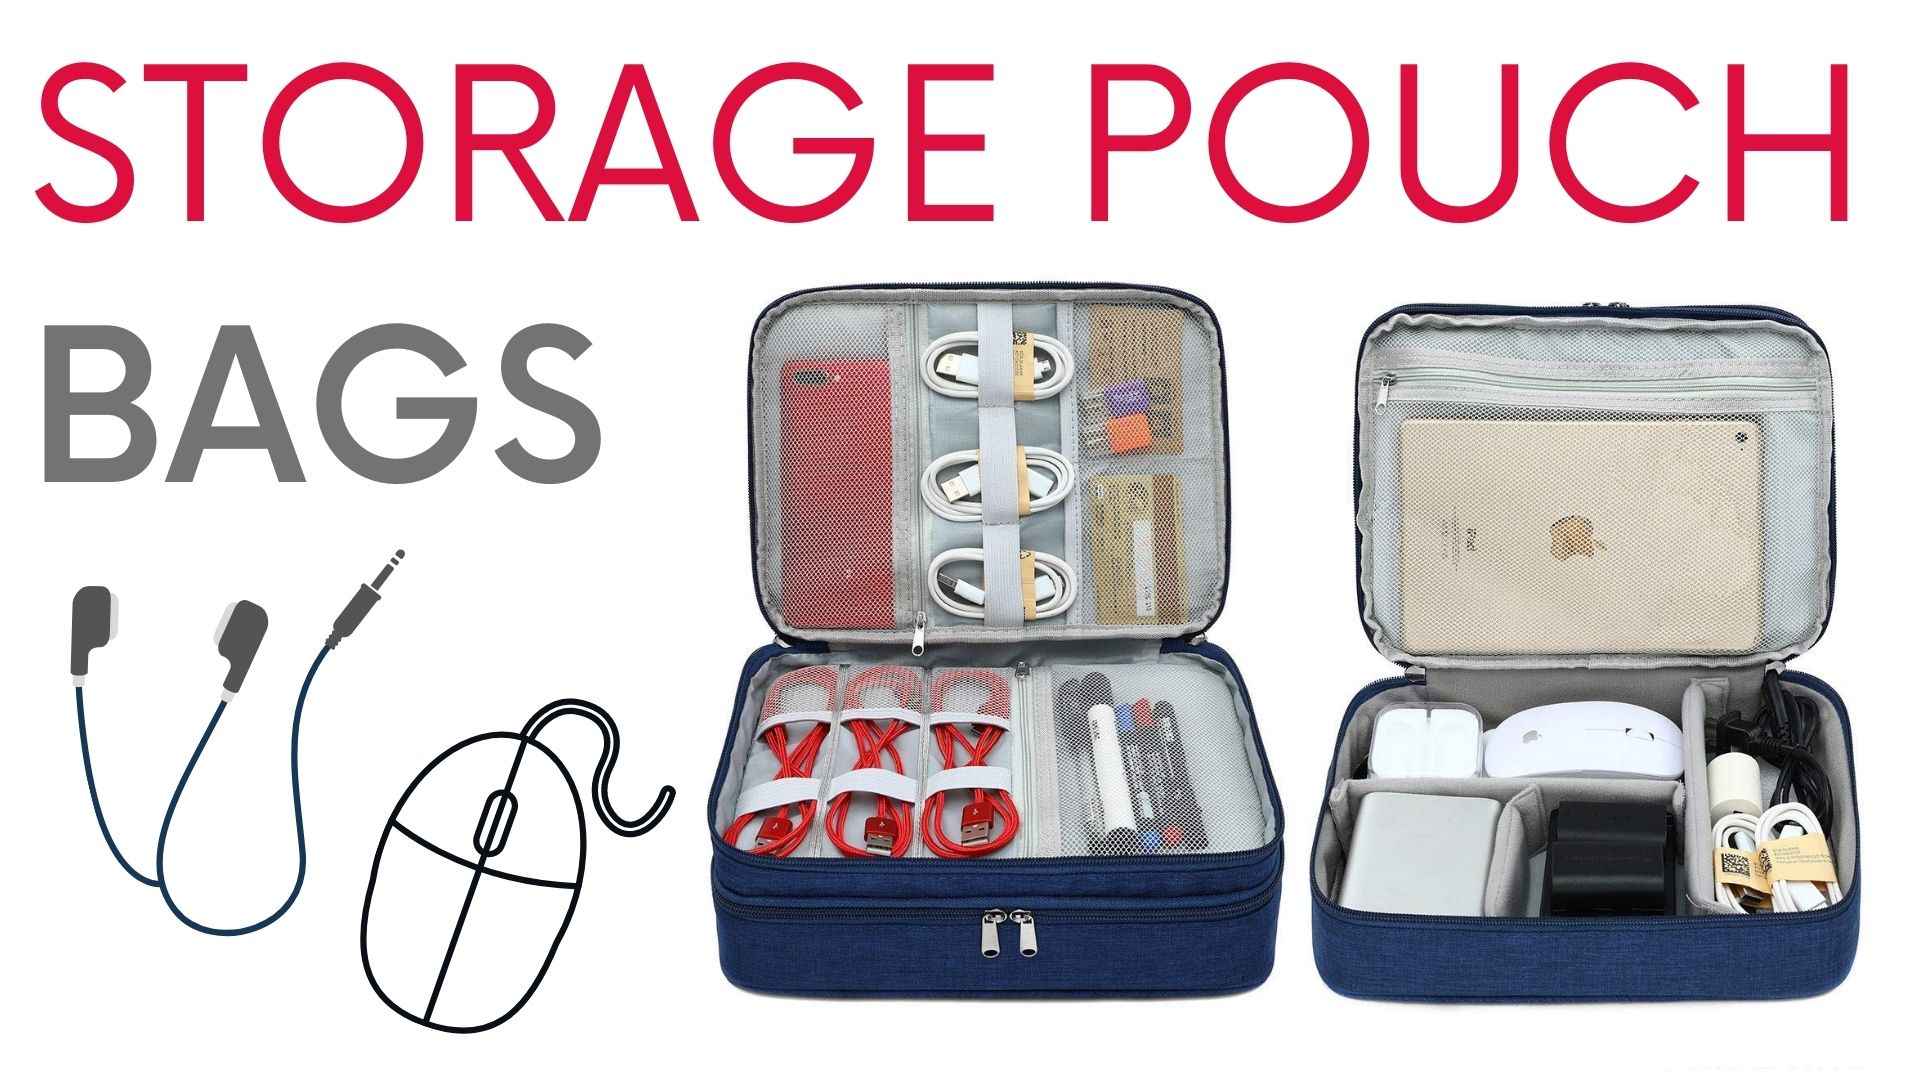 Storage Pouch Bags for accessories